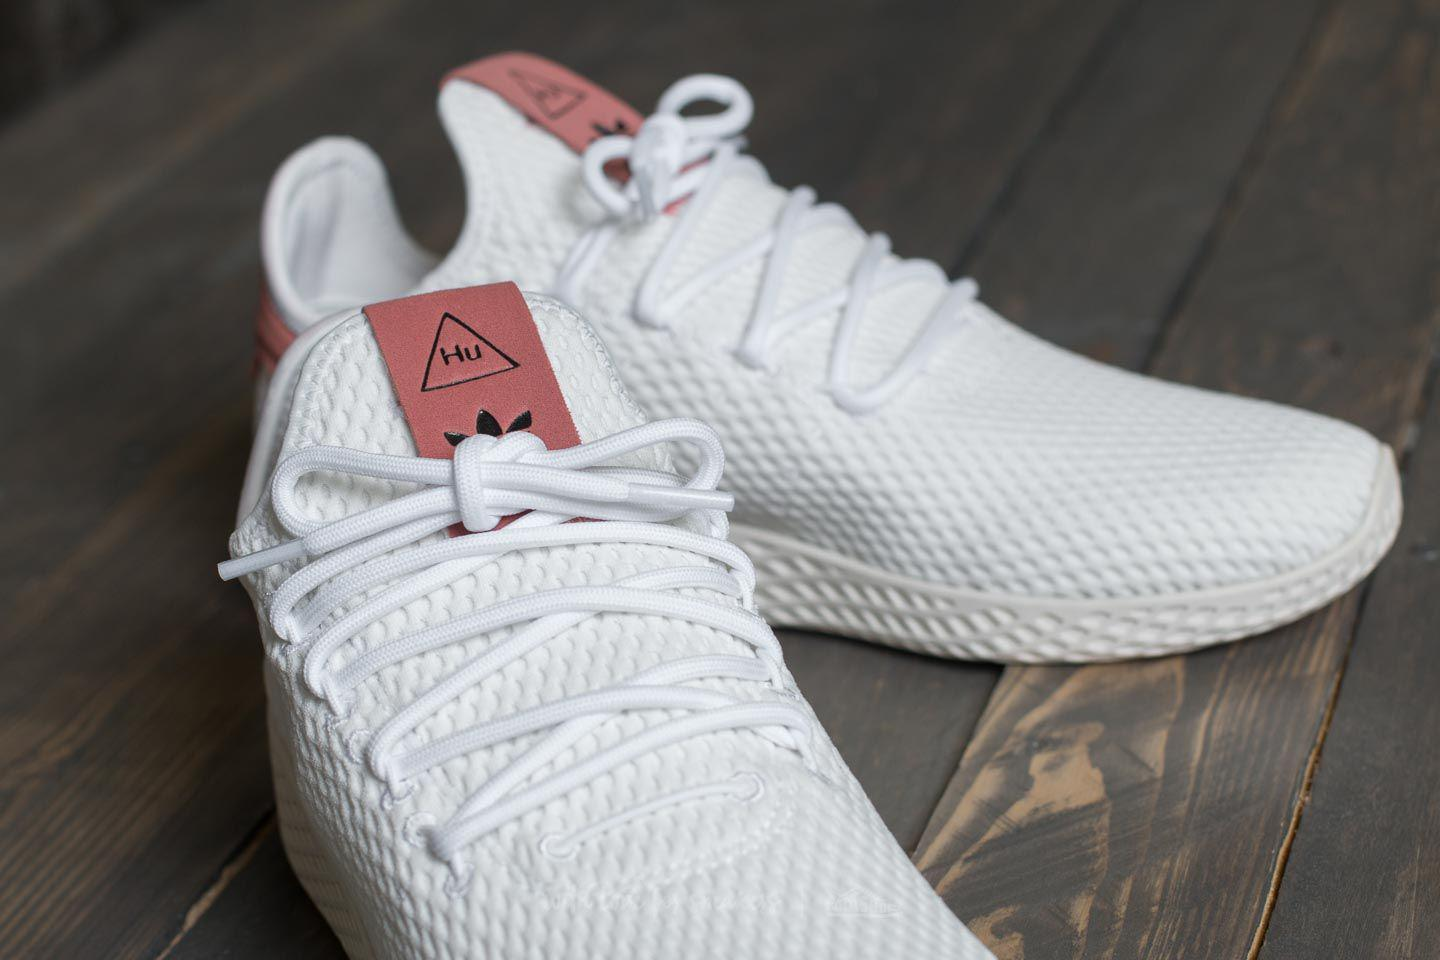 best deals on on sale classic shoes Adidas Pharrell Williams Pw Tennis Hu Ftw White/ Ftw White/ Raw Pink